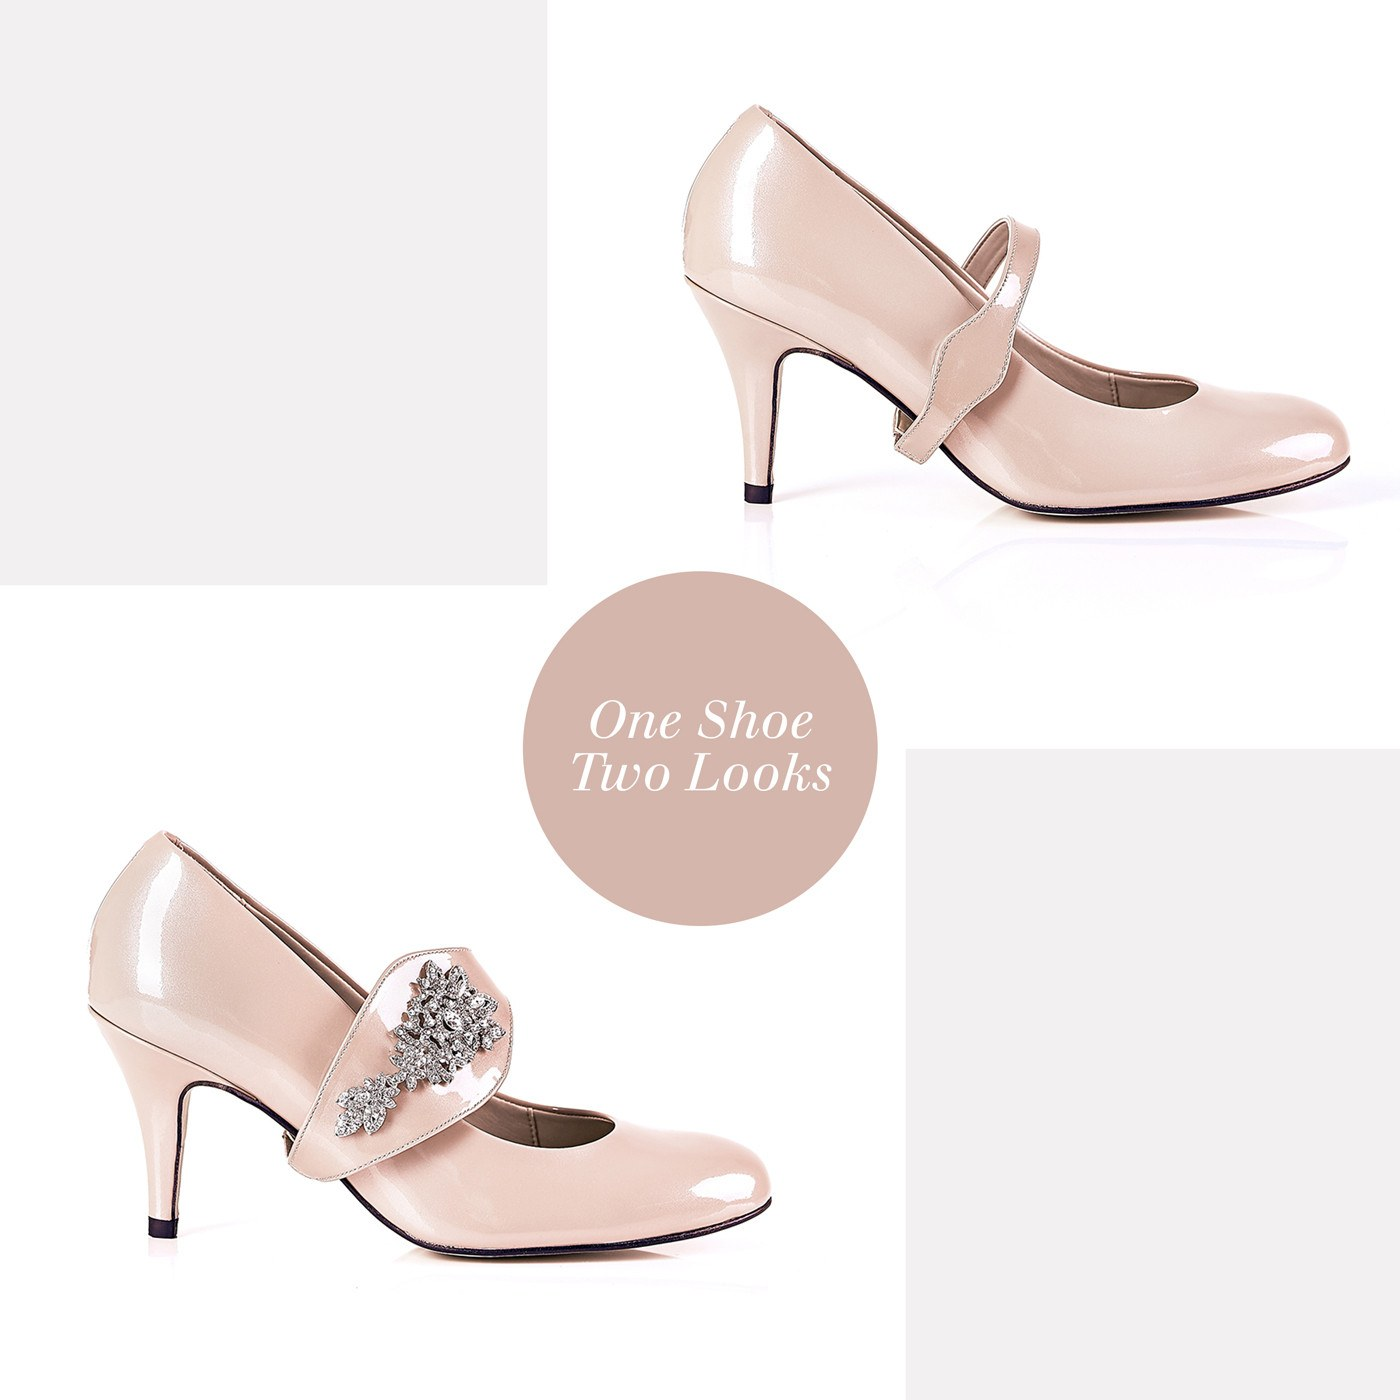 The Moon is Mine in Silver Gems - 18 Hour Heels - Blush Leather - Shoes by Shaherazad